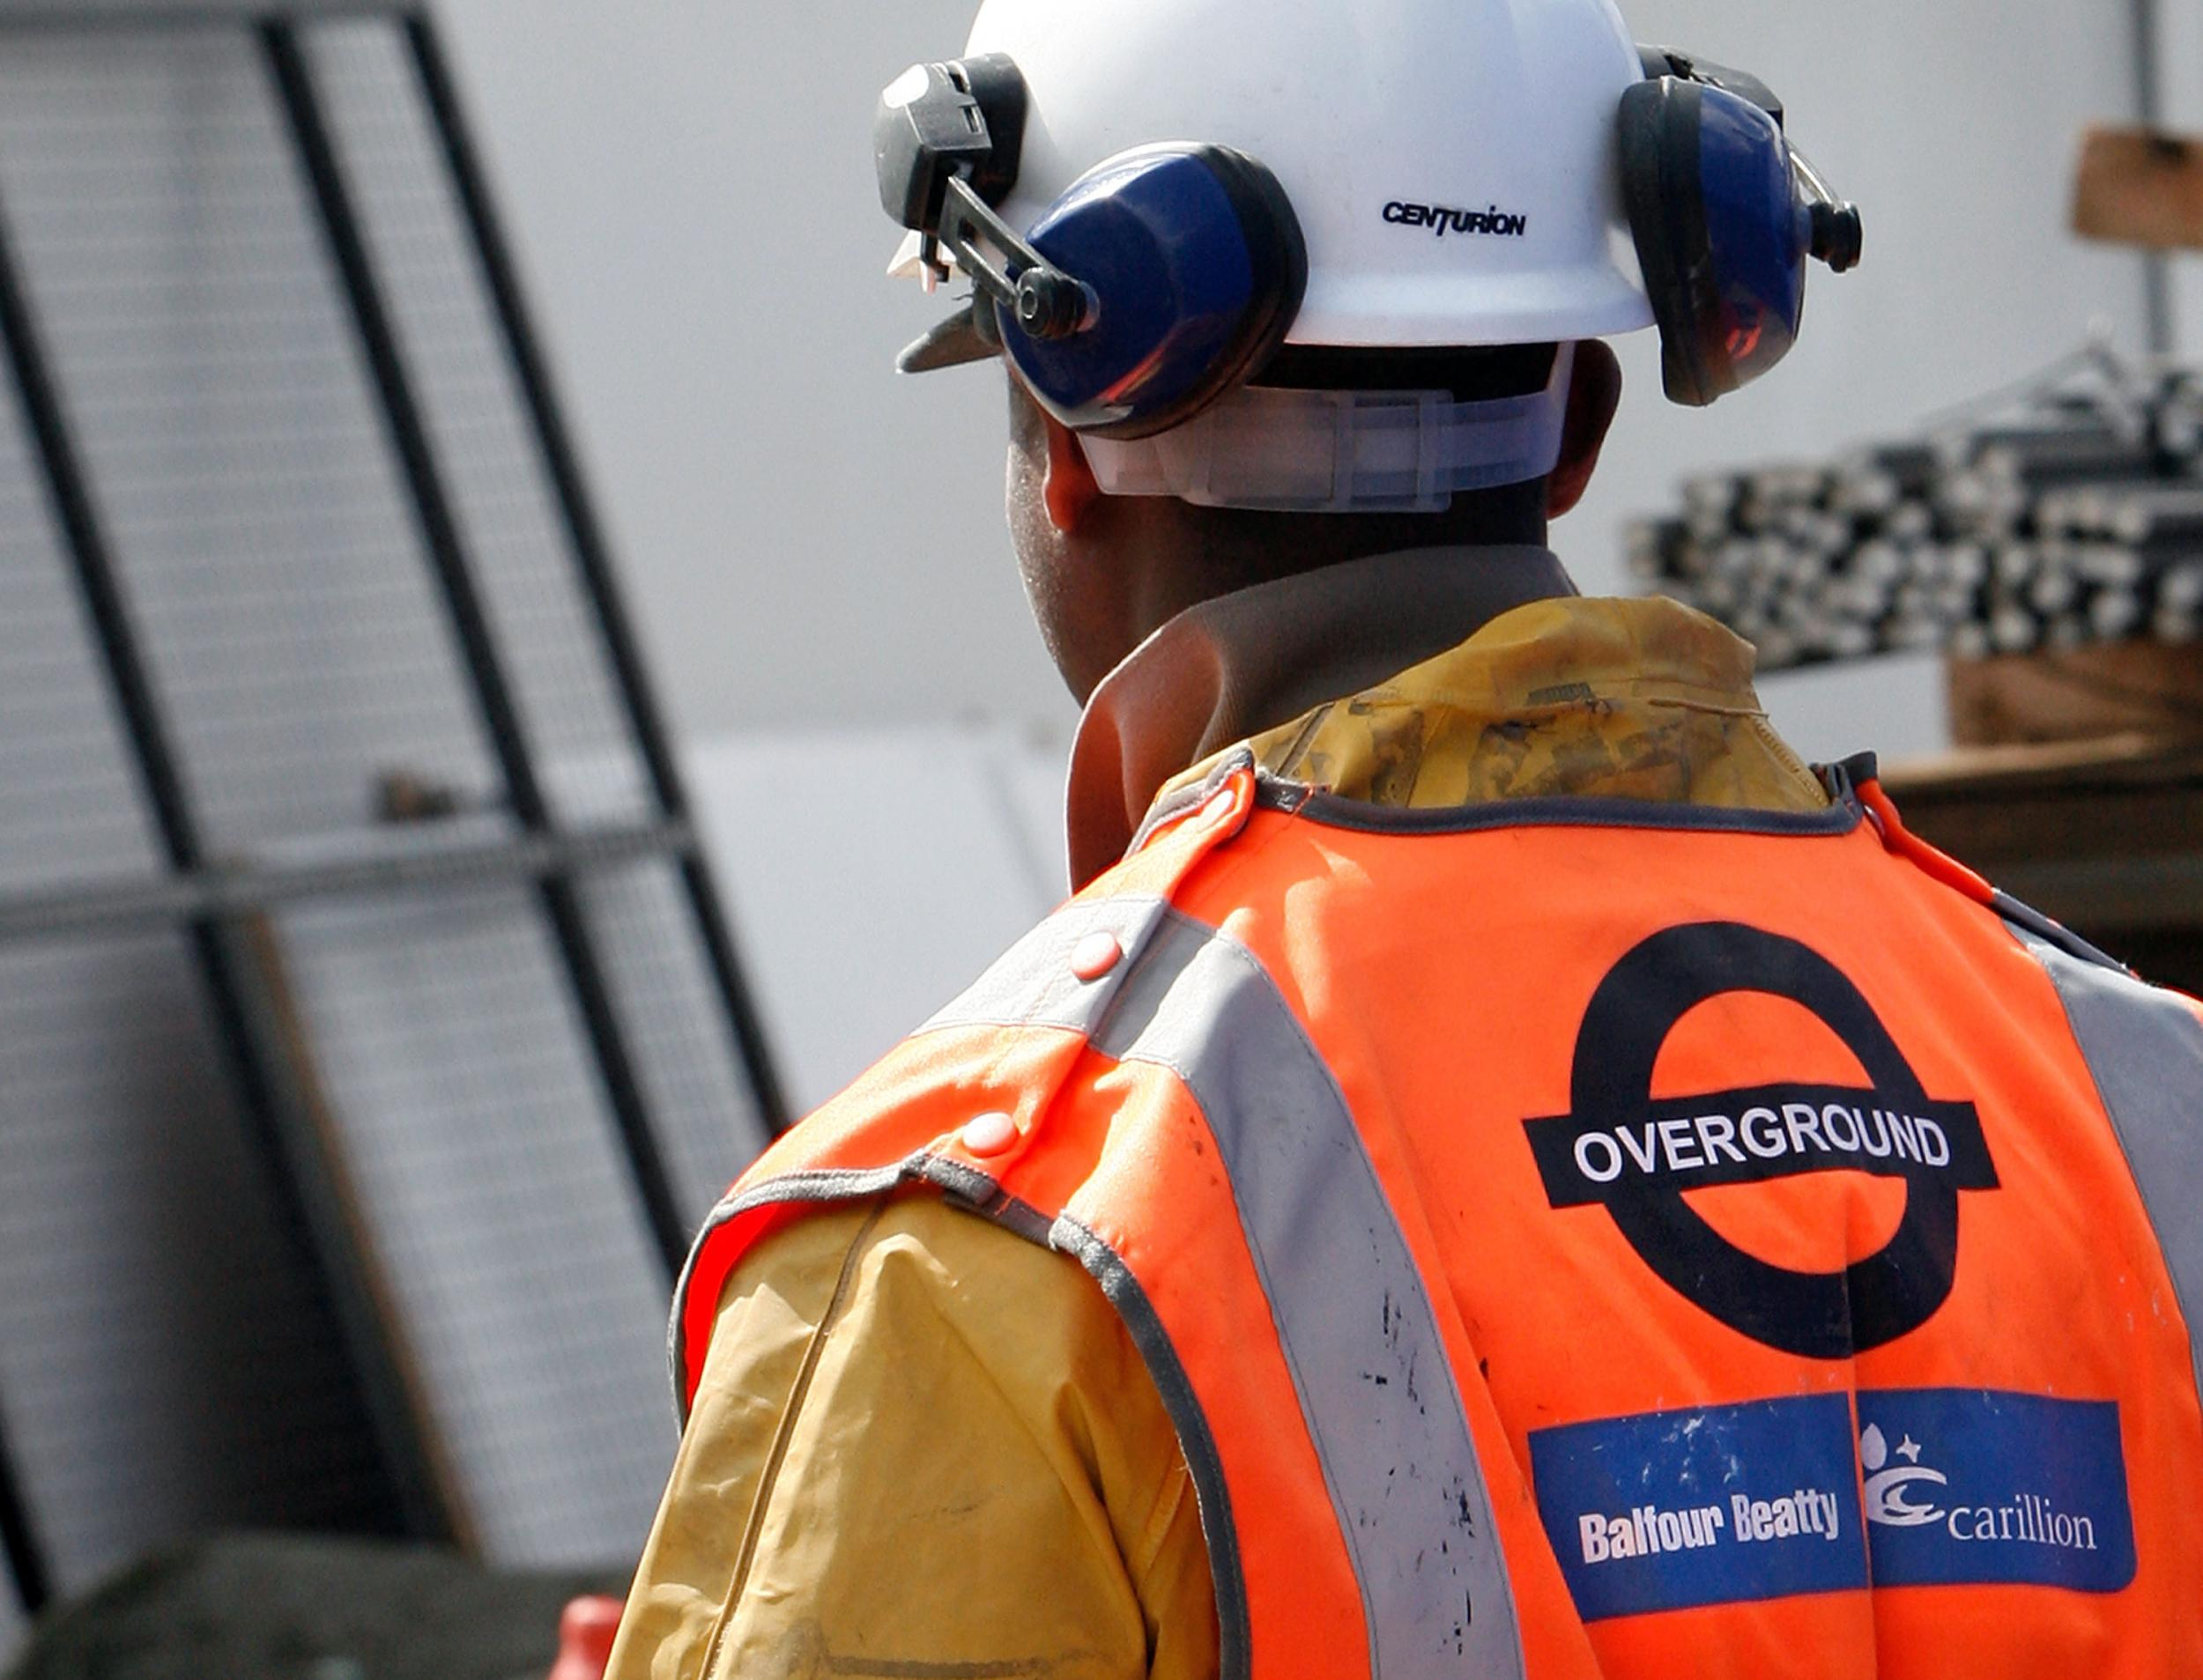 Carillion rail contracts sale safeguards hundreds of jobs